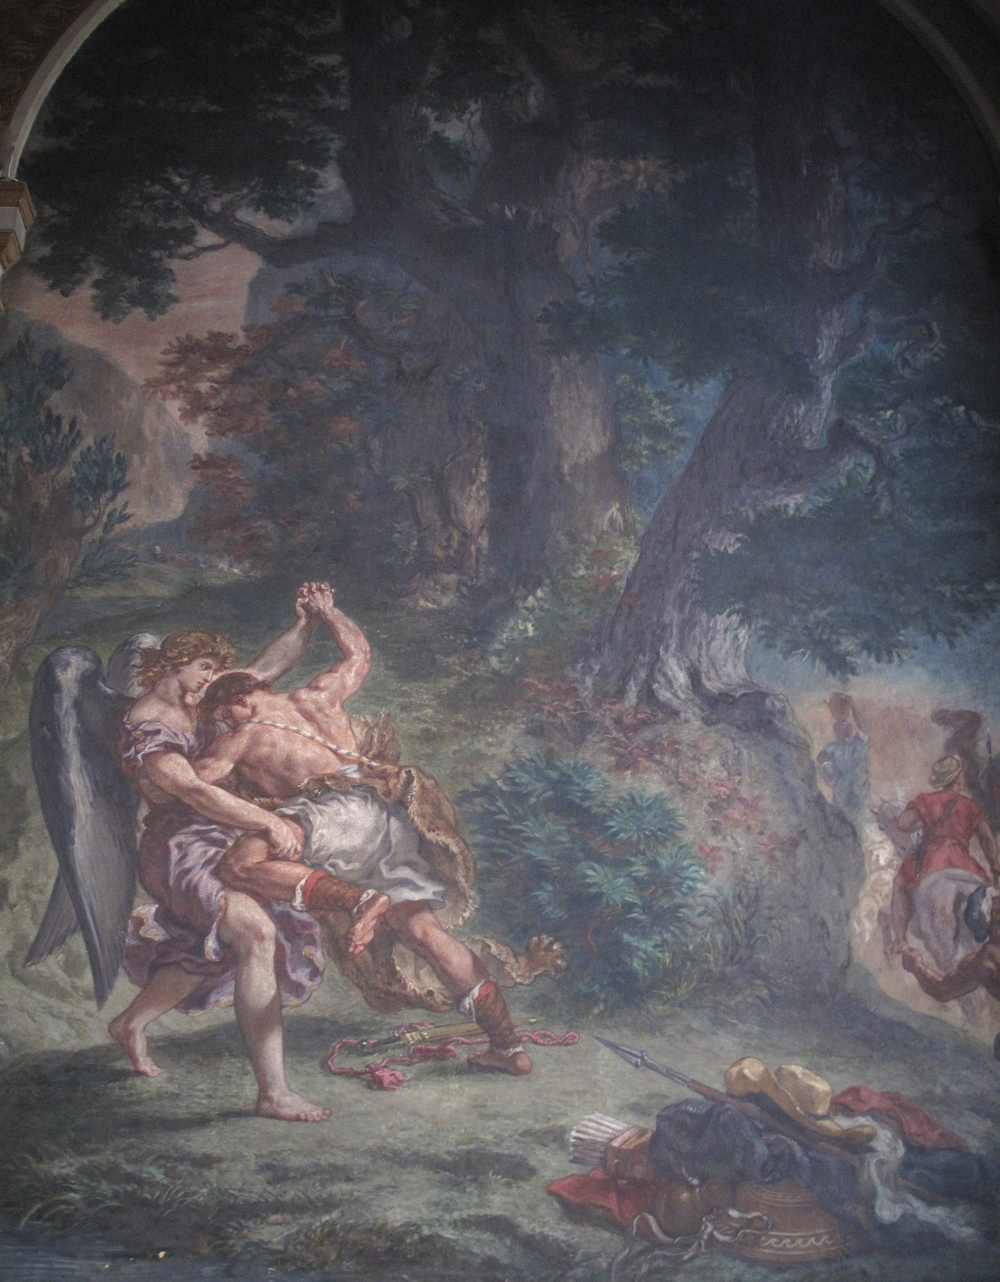 Jakob wrestling the Angel by Delacroix, in the church of St Sulpice, Paris